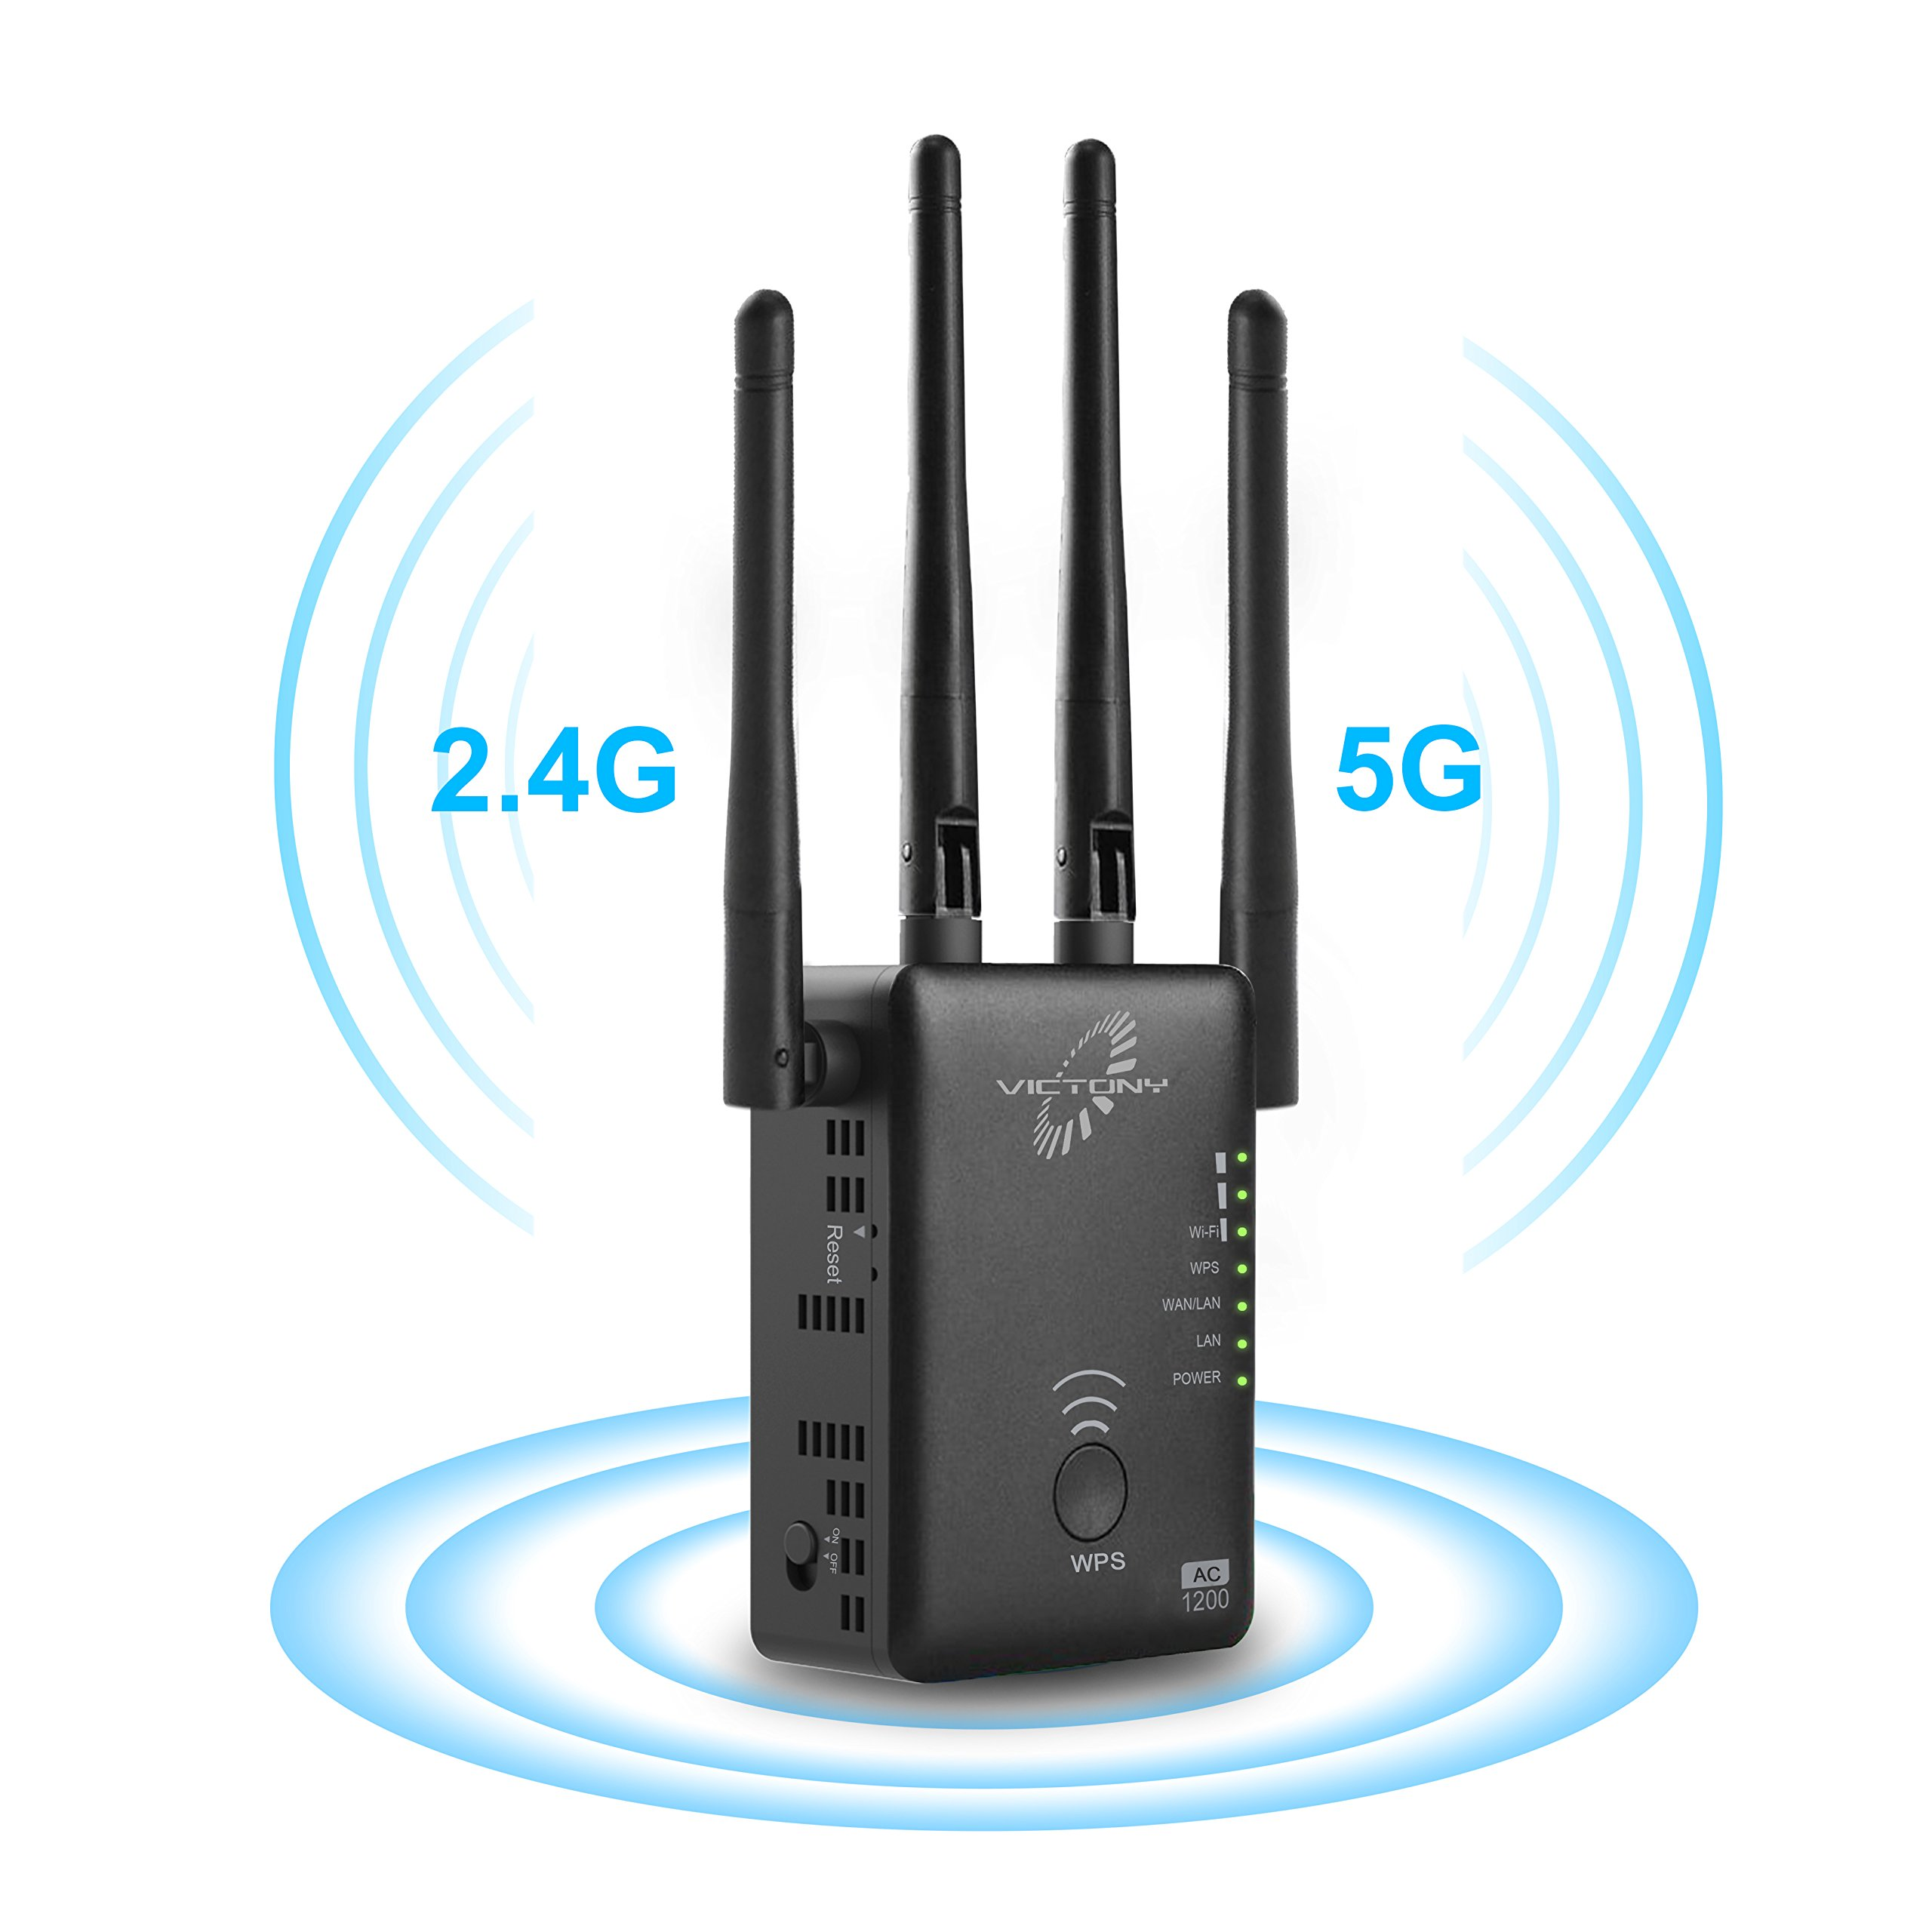 VICTONY 1200Mbps Wireless WiFi Repeater with External Antennas WiFi Range Range Extender for 2.4G and 5G